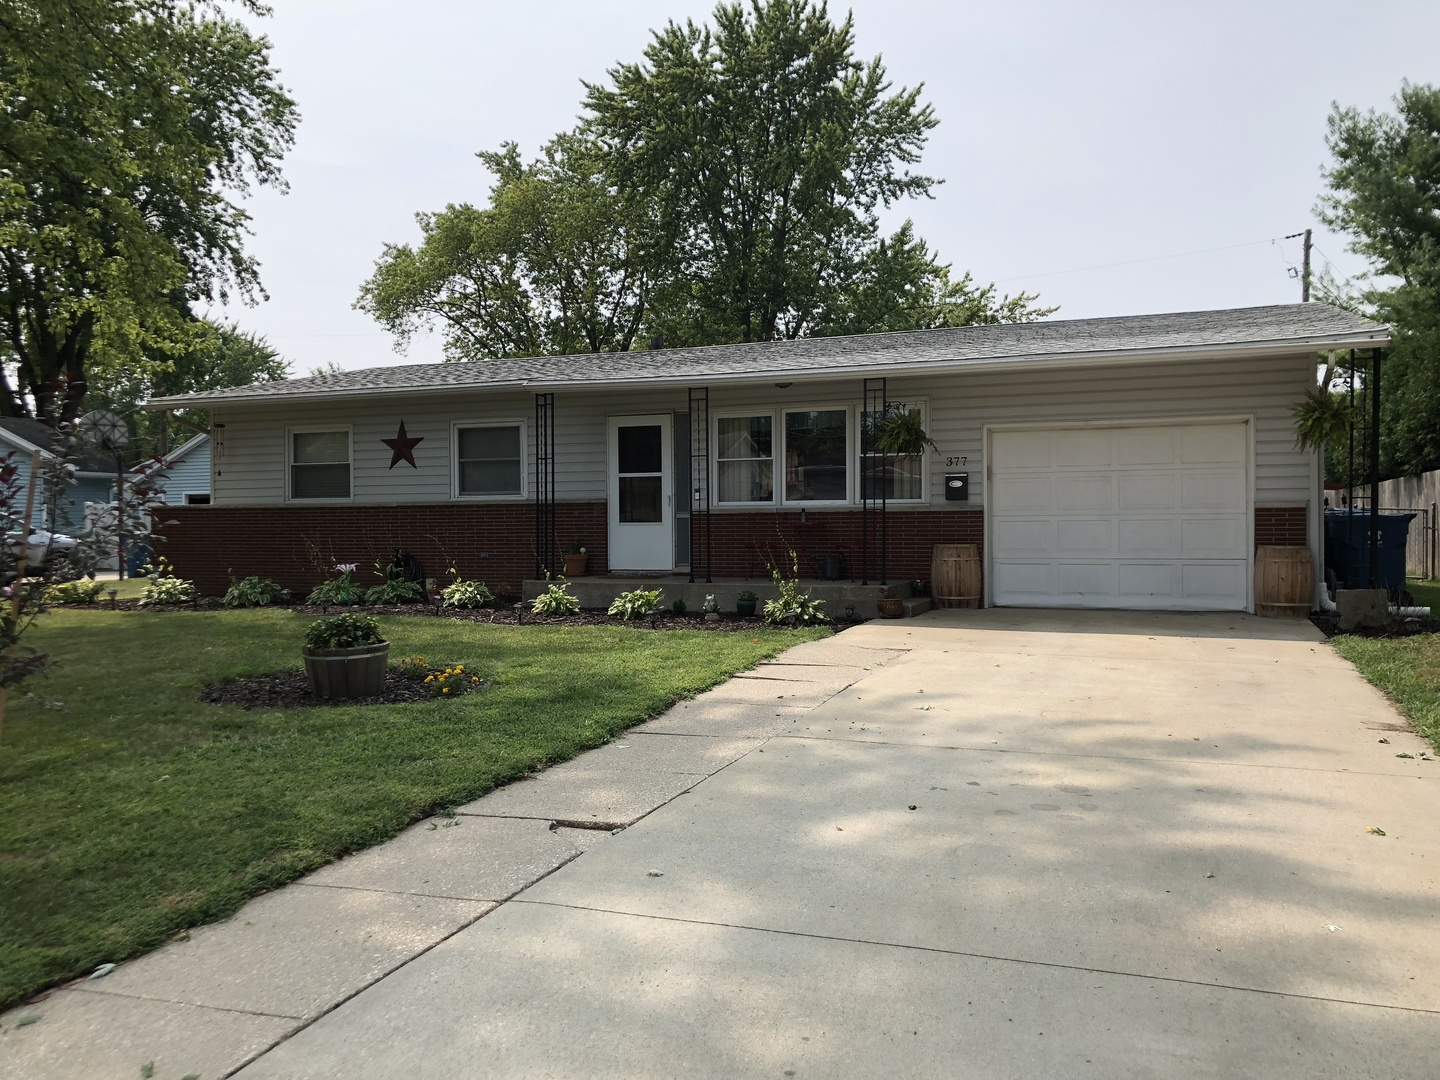 377 North Jackson Avenue, Bradley, IL 60915 | john greene Realtor